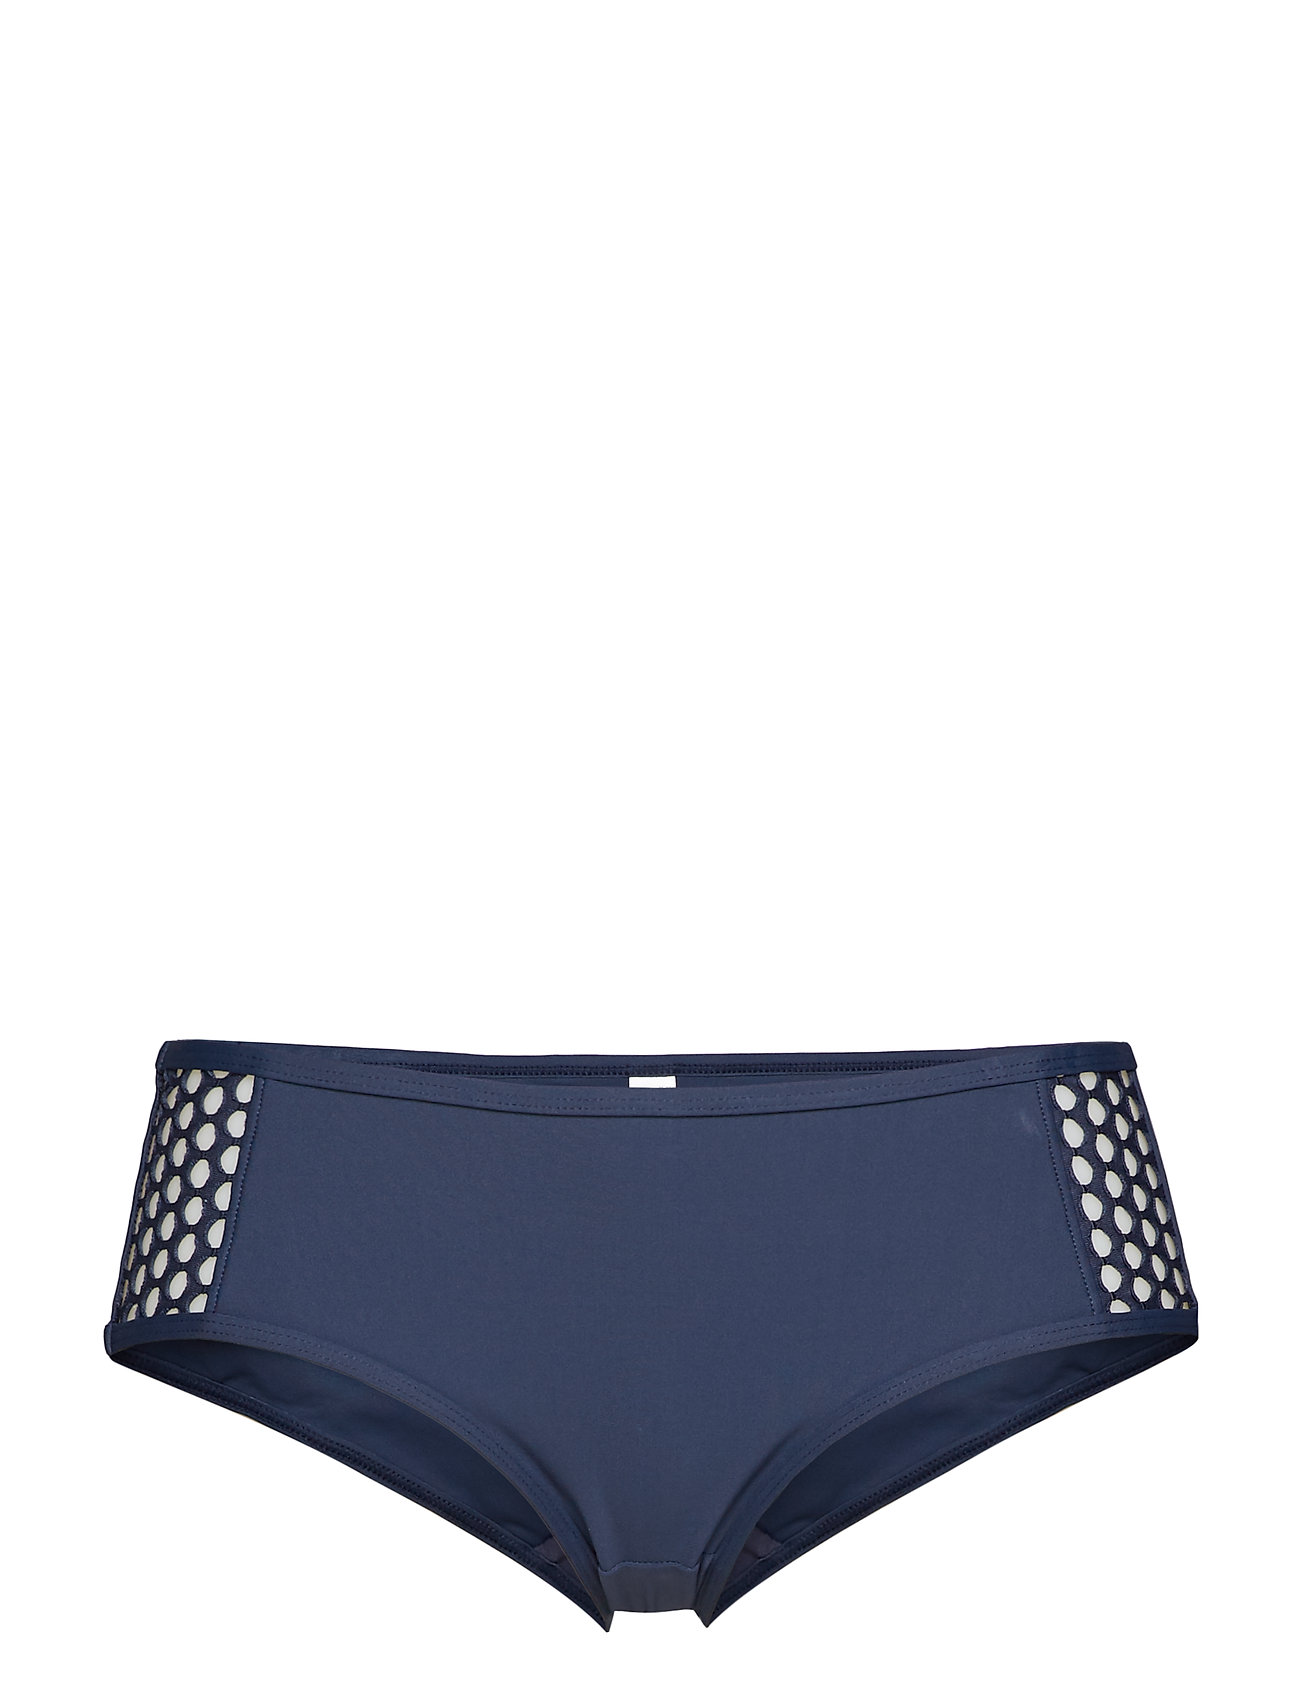 Esprit Bodywear Women Beach Bottoms - DARK BLUE